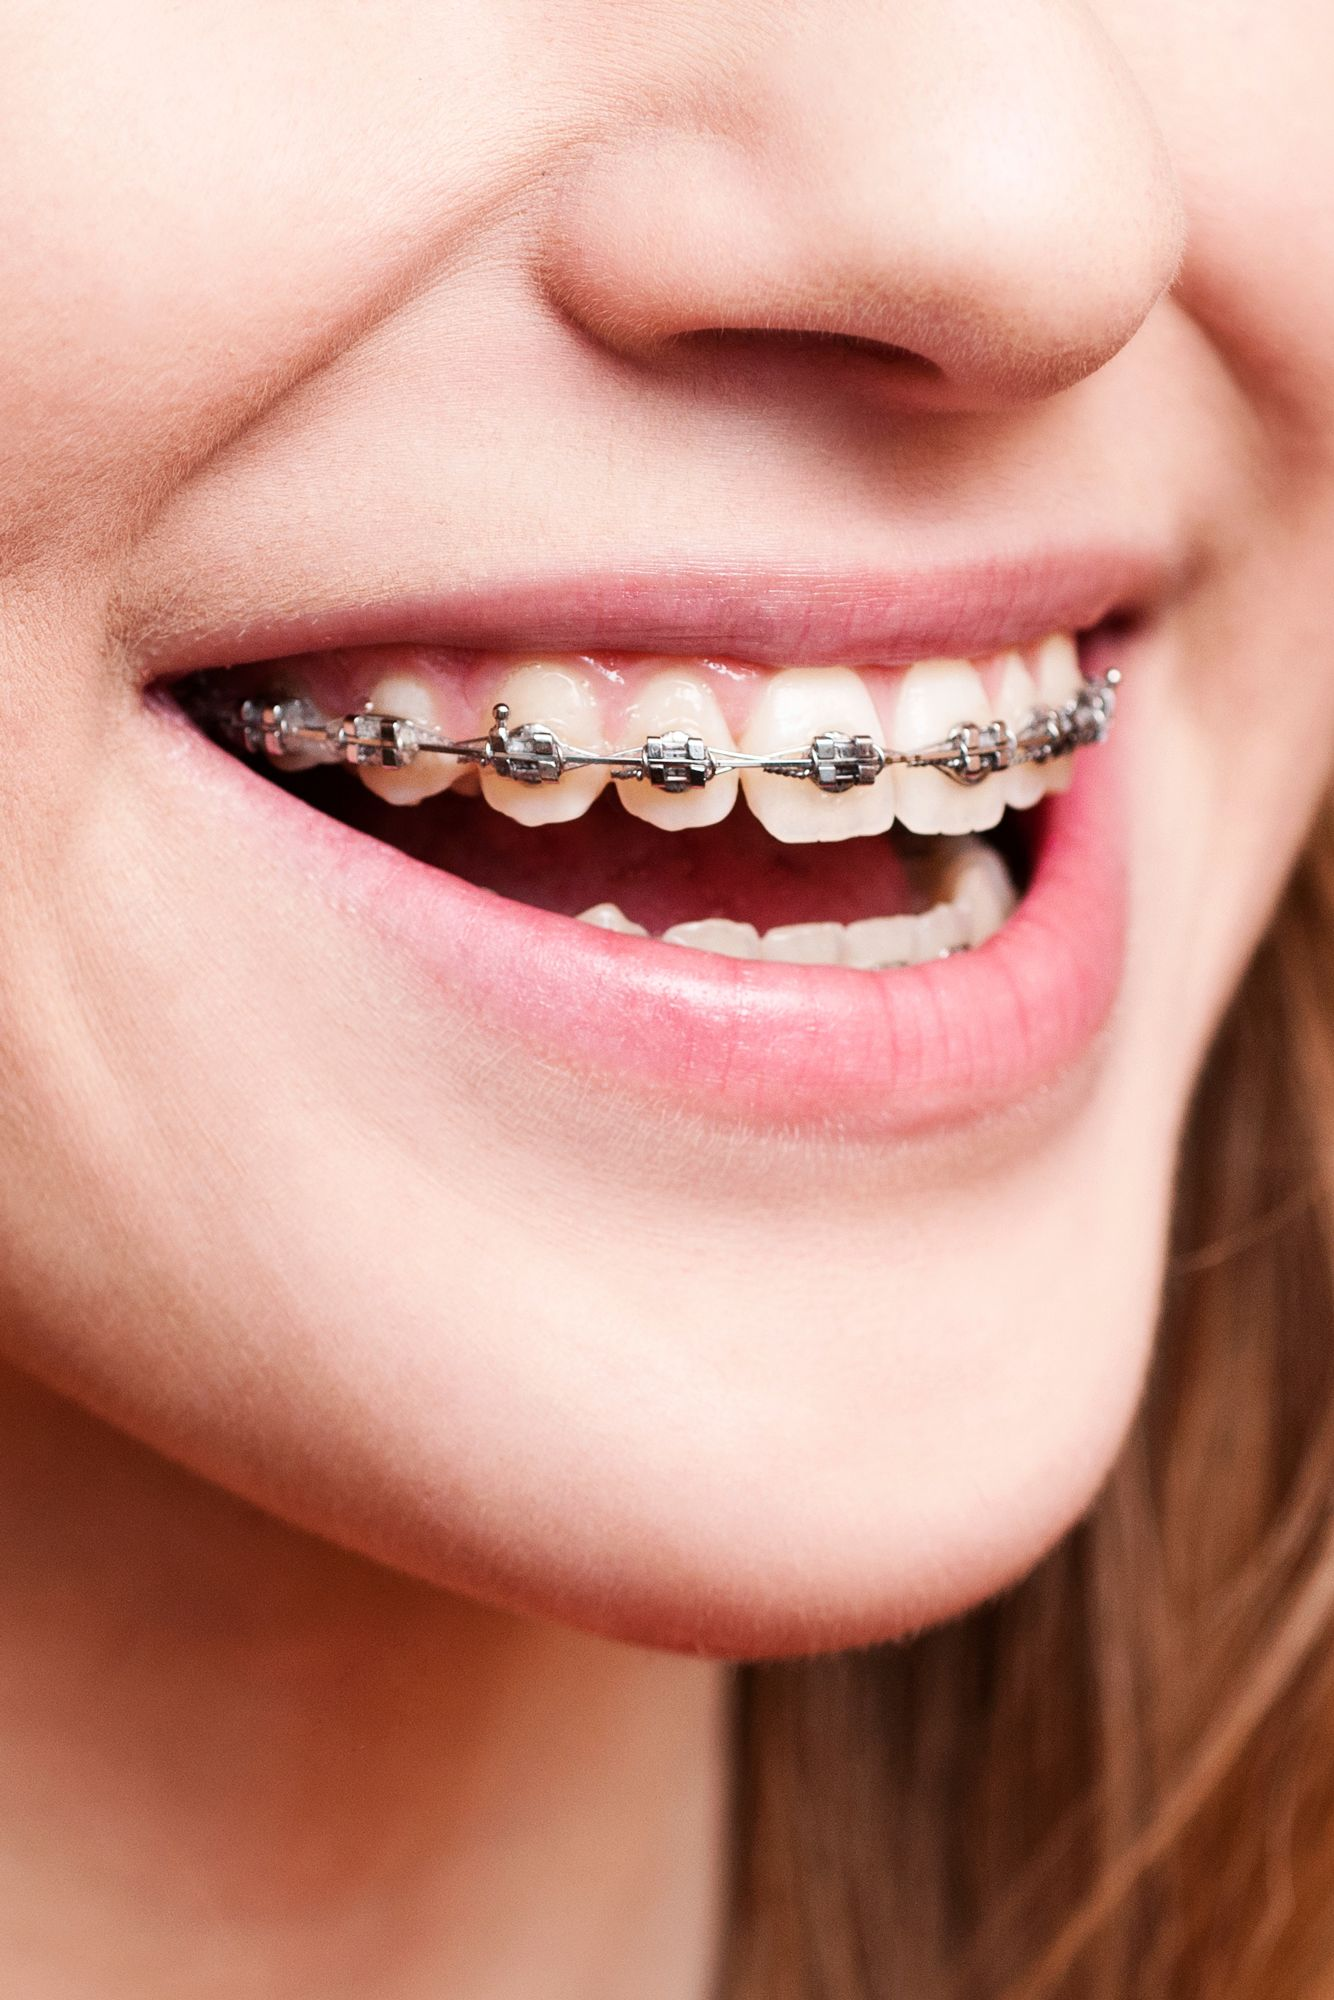 Info on braces for adults effective?